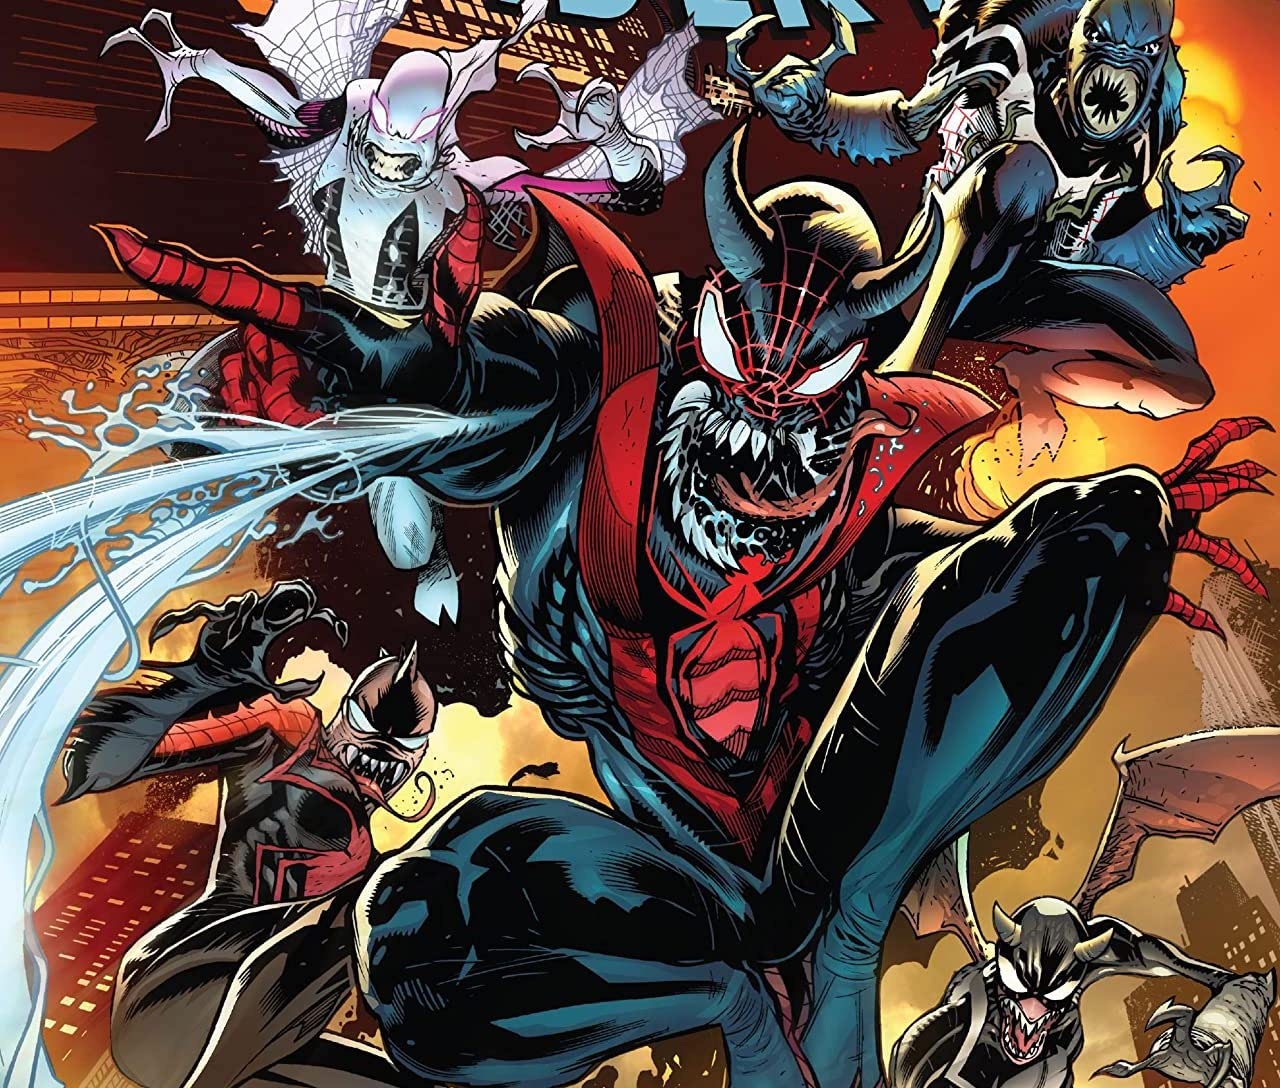 'Amazing Spider-Man' #51.LR review